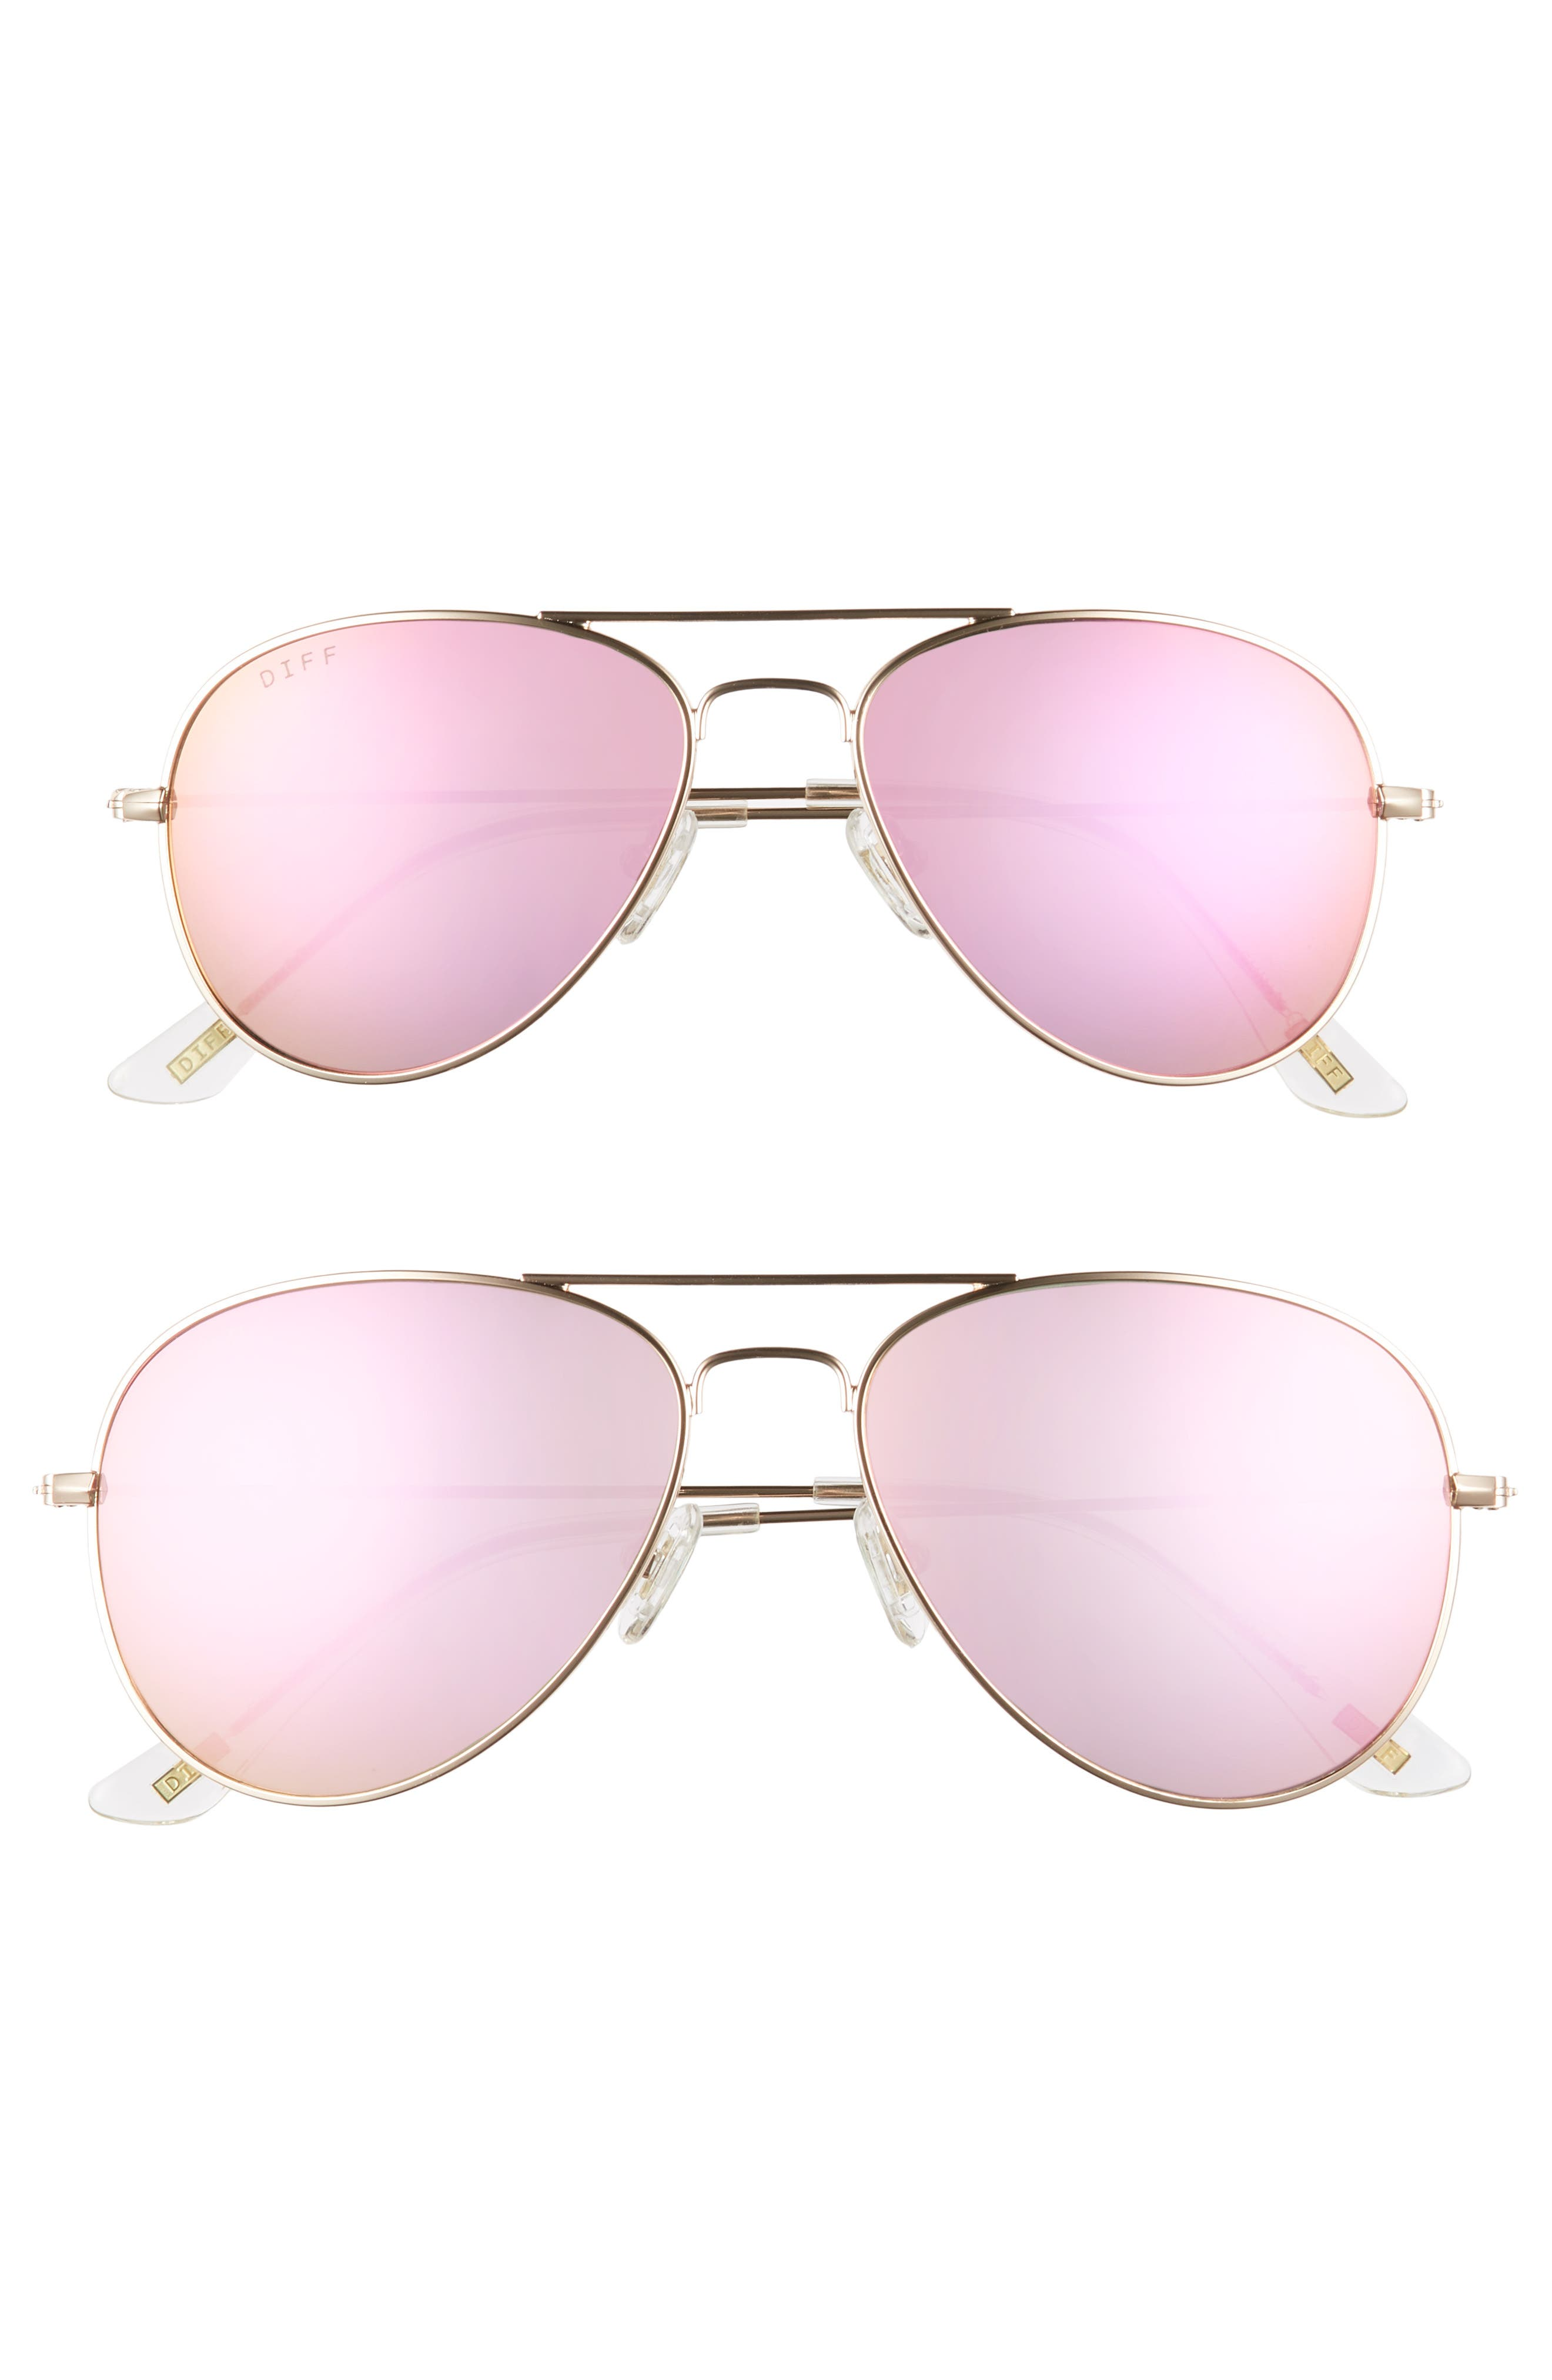 Mommy & Me Cruz 2-Pack Aviator Sunglasses,                             Main thumbnail 1, color,                             Gold/ Pink